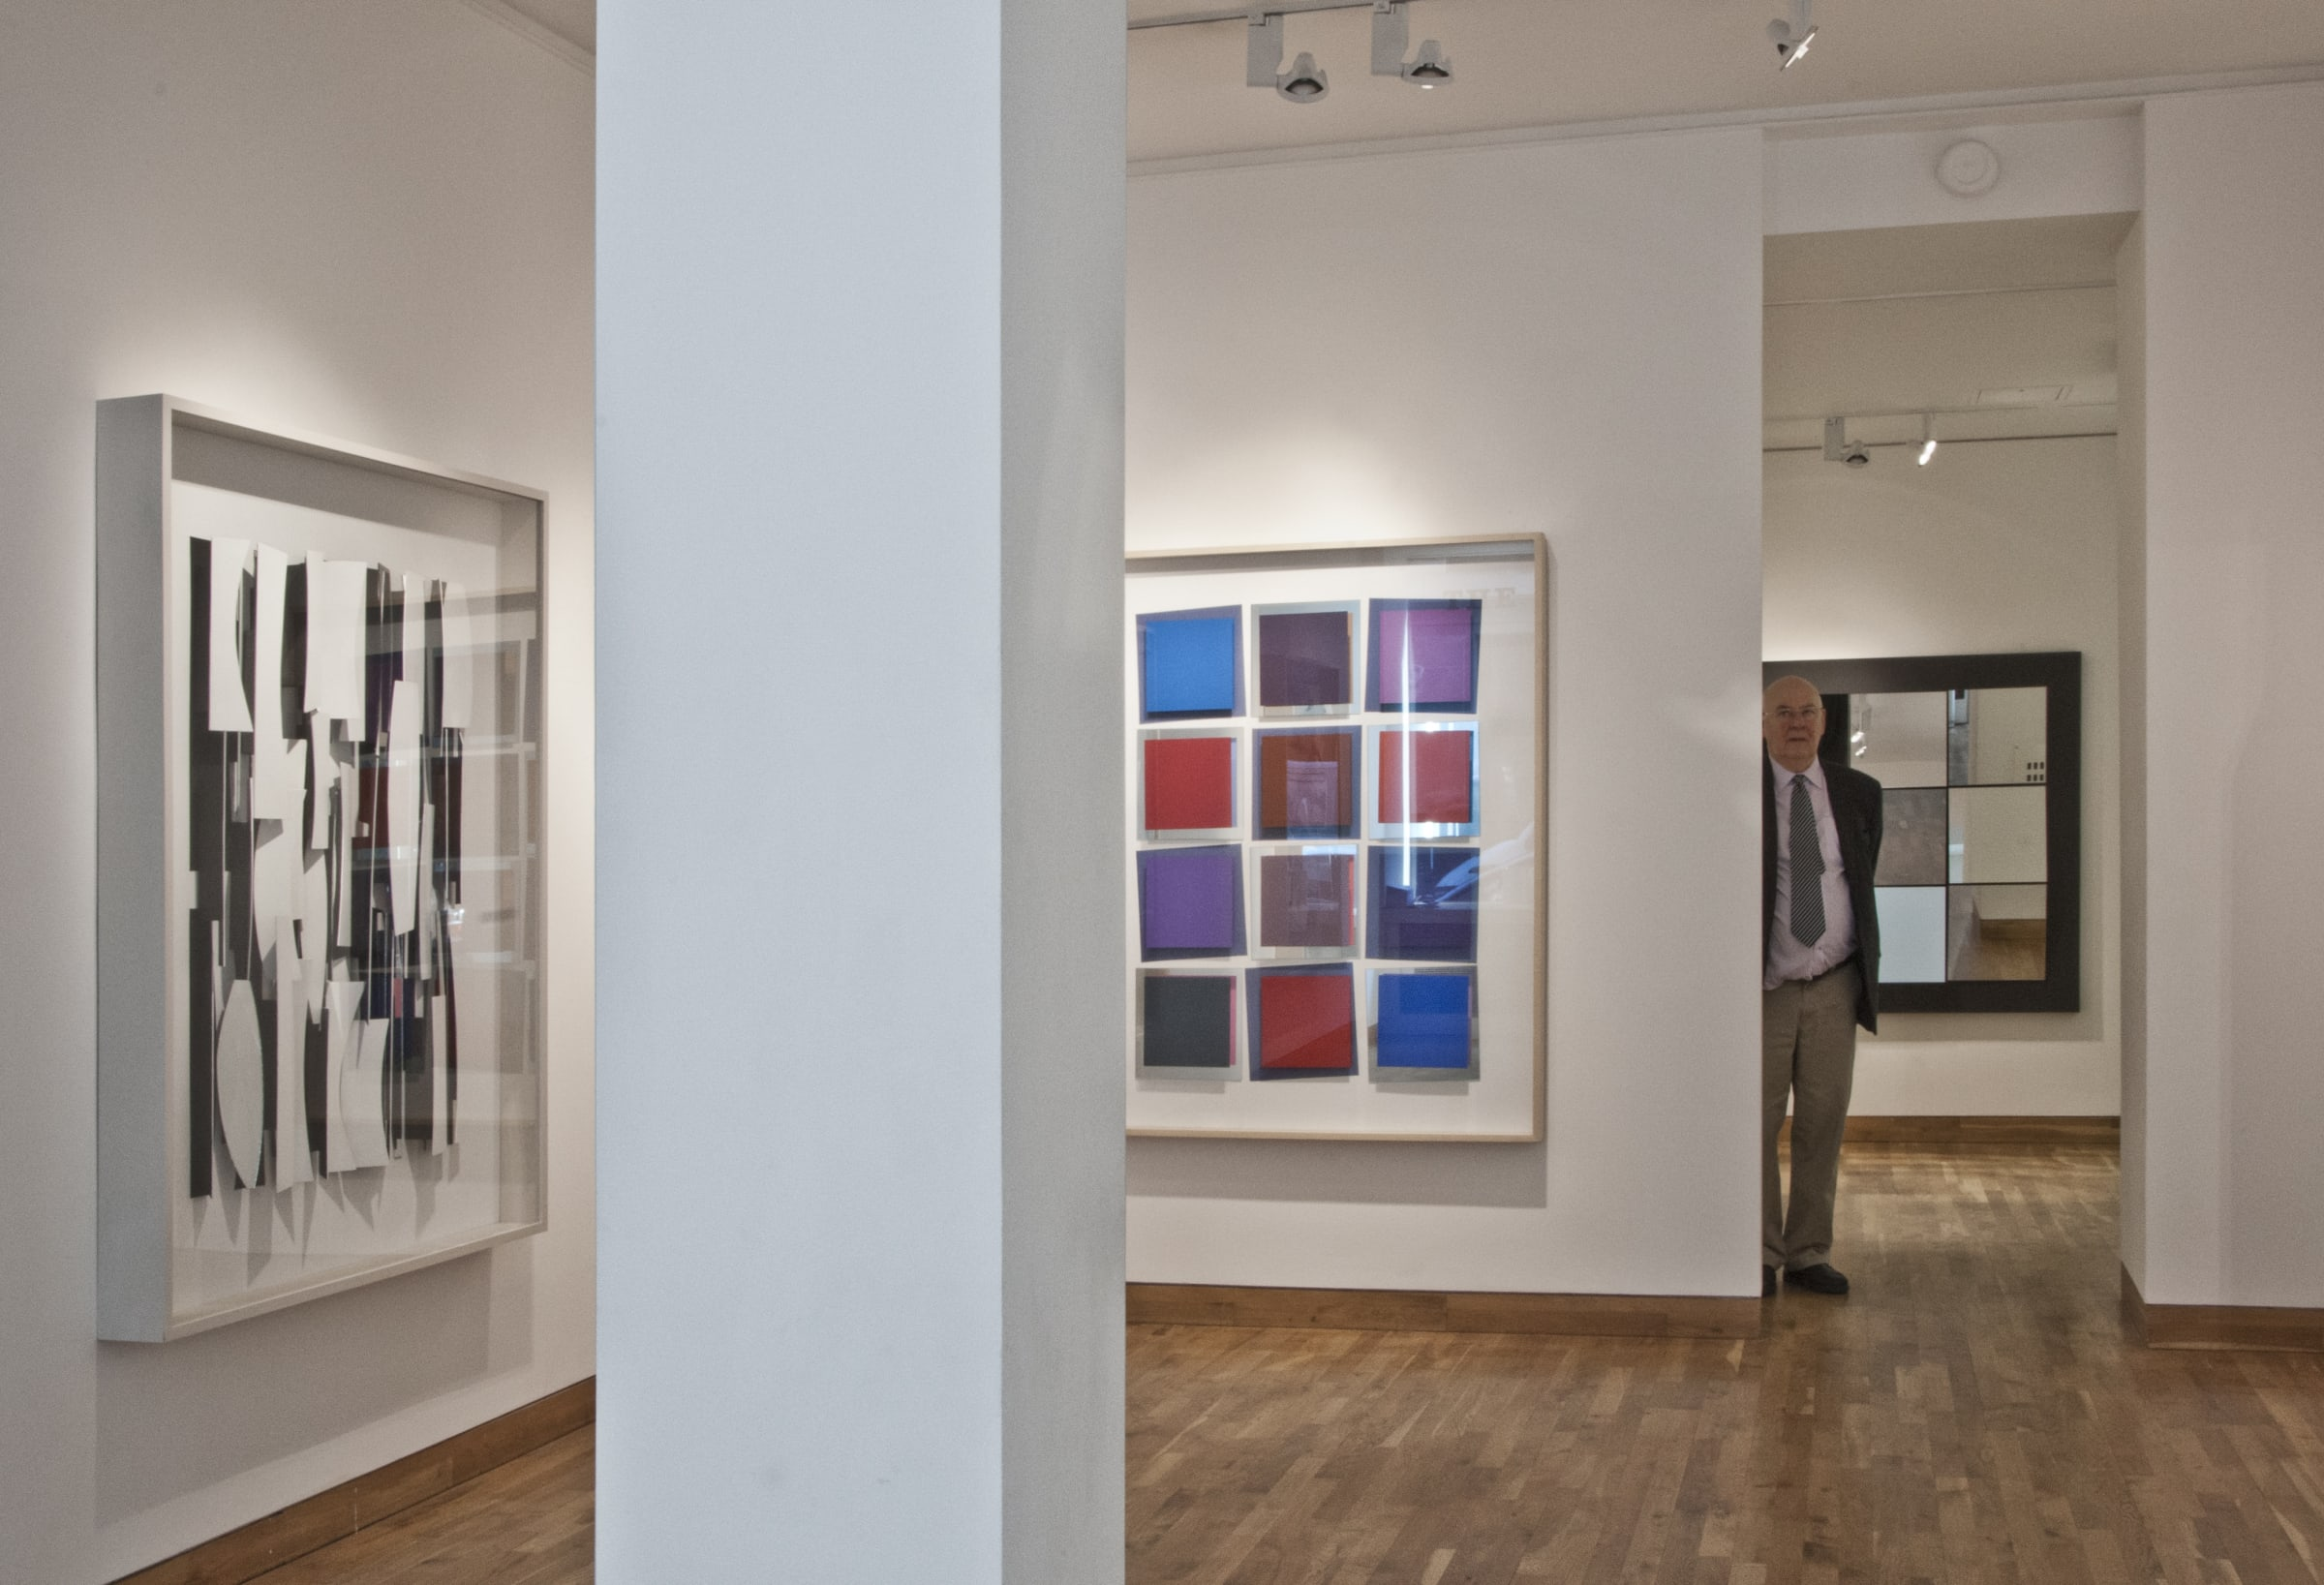 """<span class=""""link fancybox-details-link""""><a href=""""/exhibitions/75/works/image_standalone223/"""">View Detail Page</a></span><p>CHRISTIAN MEGERT   A NEW SPACE   11 JAN - 24 FEB 2012  Installation View</p>"""